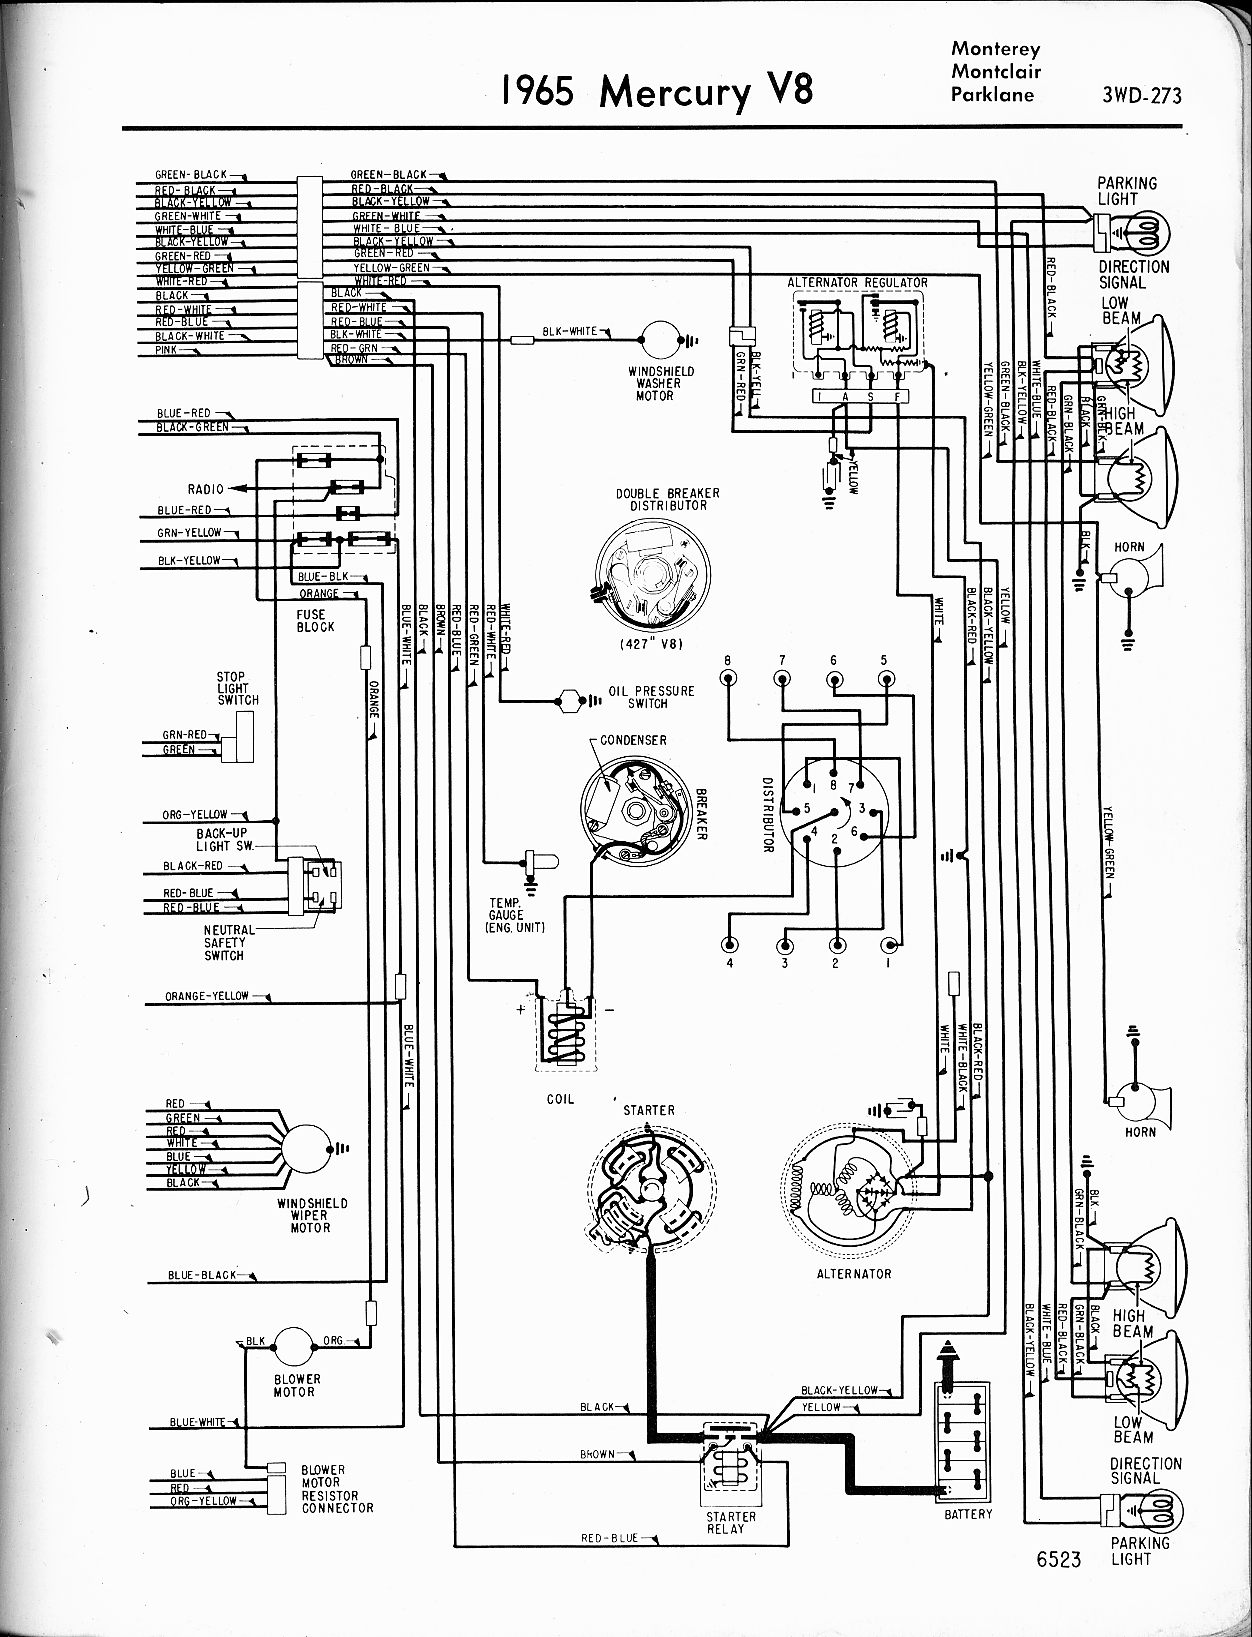 1970 Ford Radio Wiring Diagram Archive Of Automotive 1988 Mustang 88 Truck Harness Opinions About U2022 Rh Voterid Co